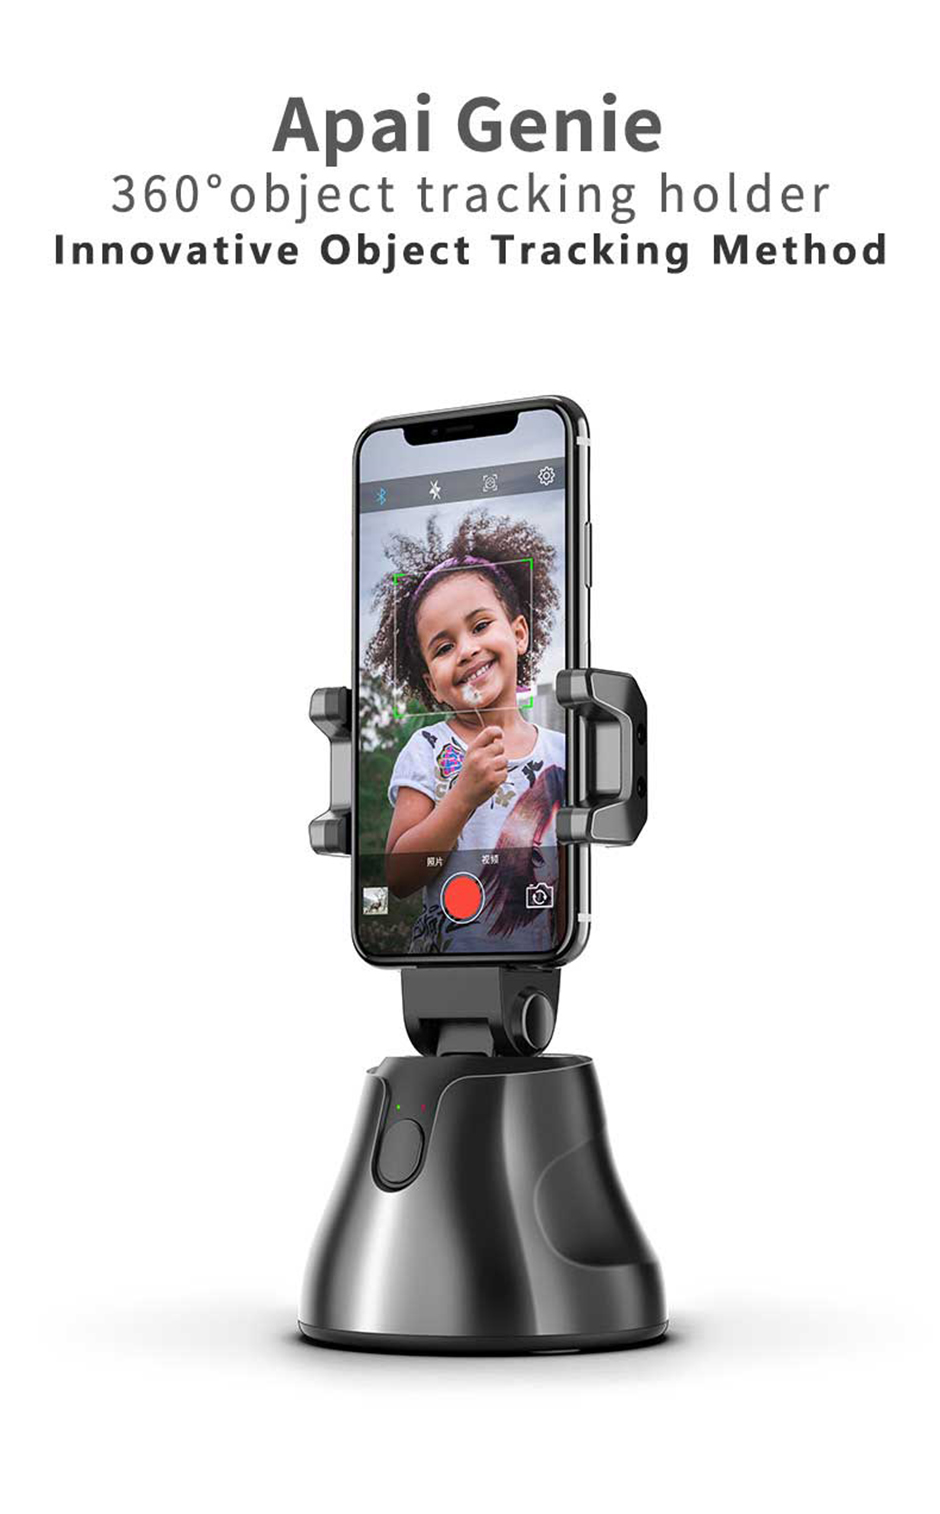 Hot Sale Live Artifact Auto 360 intelligent follow-up camera, object tracking, face recognition, APP control Mobile phone holder 0